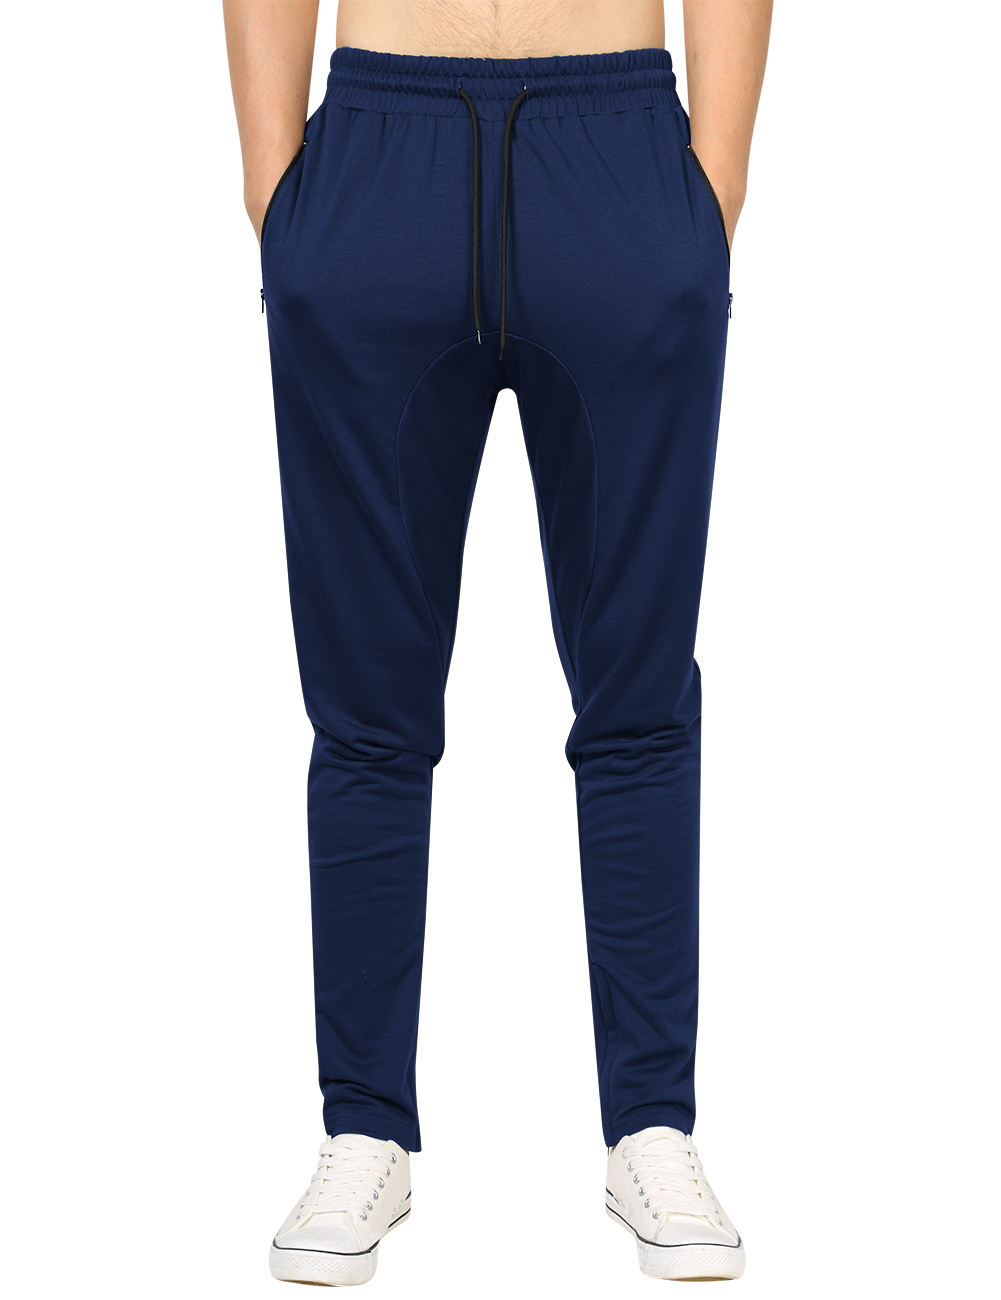 Yong Horse Men's Drawstring Waist Sweatpants